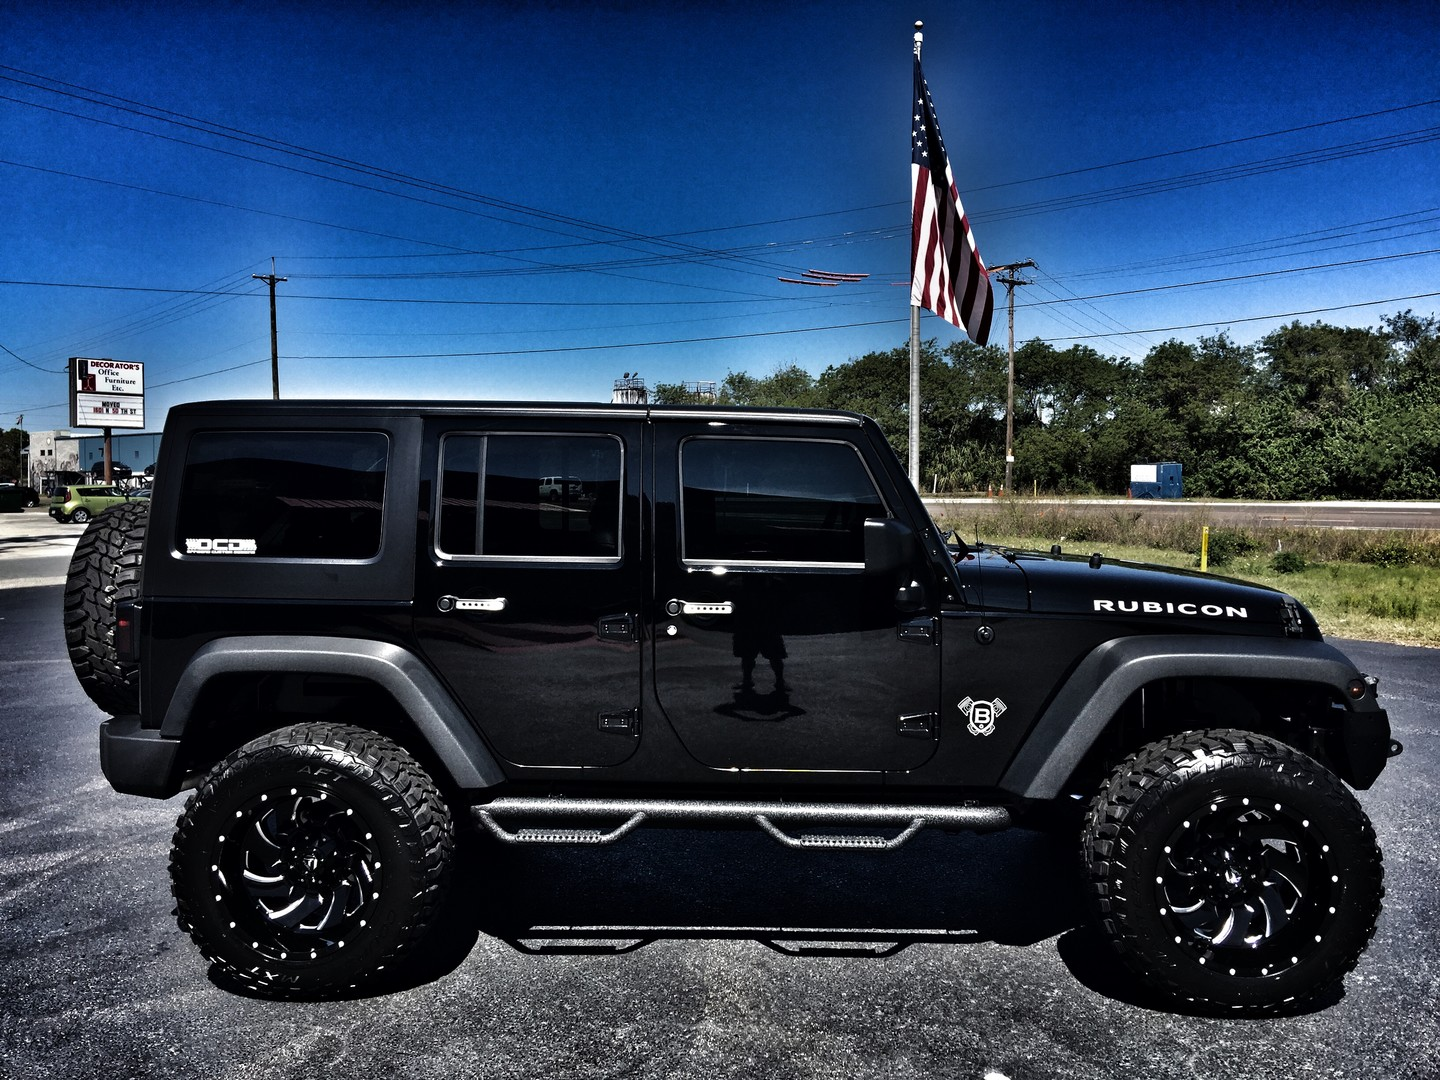 2016 jeep wrangler unlimited rubicon custom lifted leather nav hardtop florida bayshore automotive. Black Bedroom Furniture Sets. Home Design Ideas